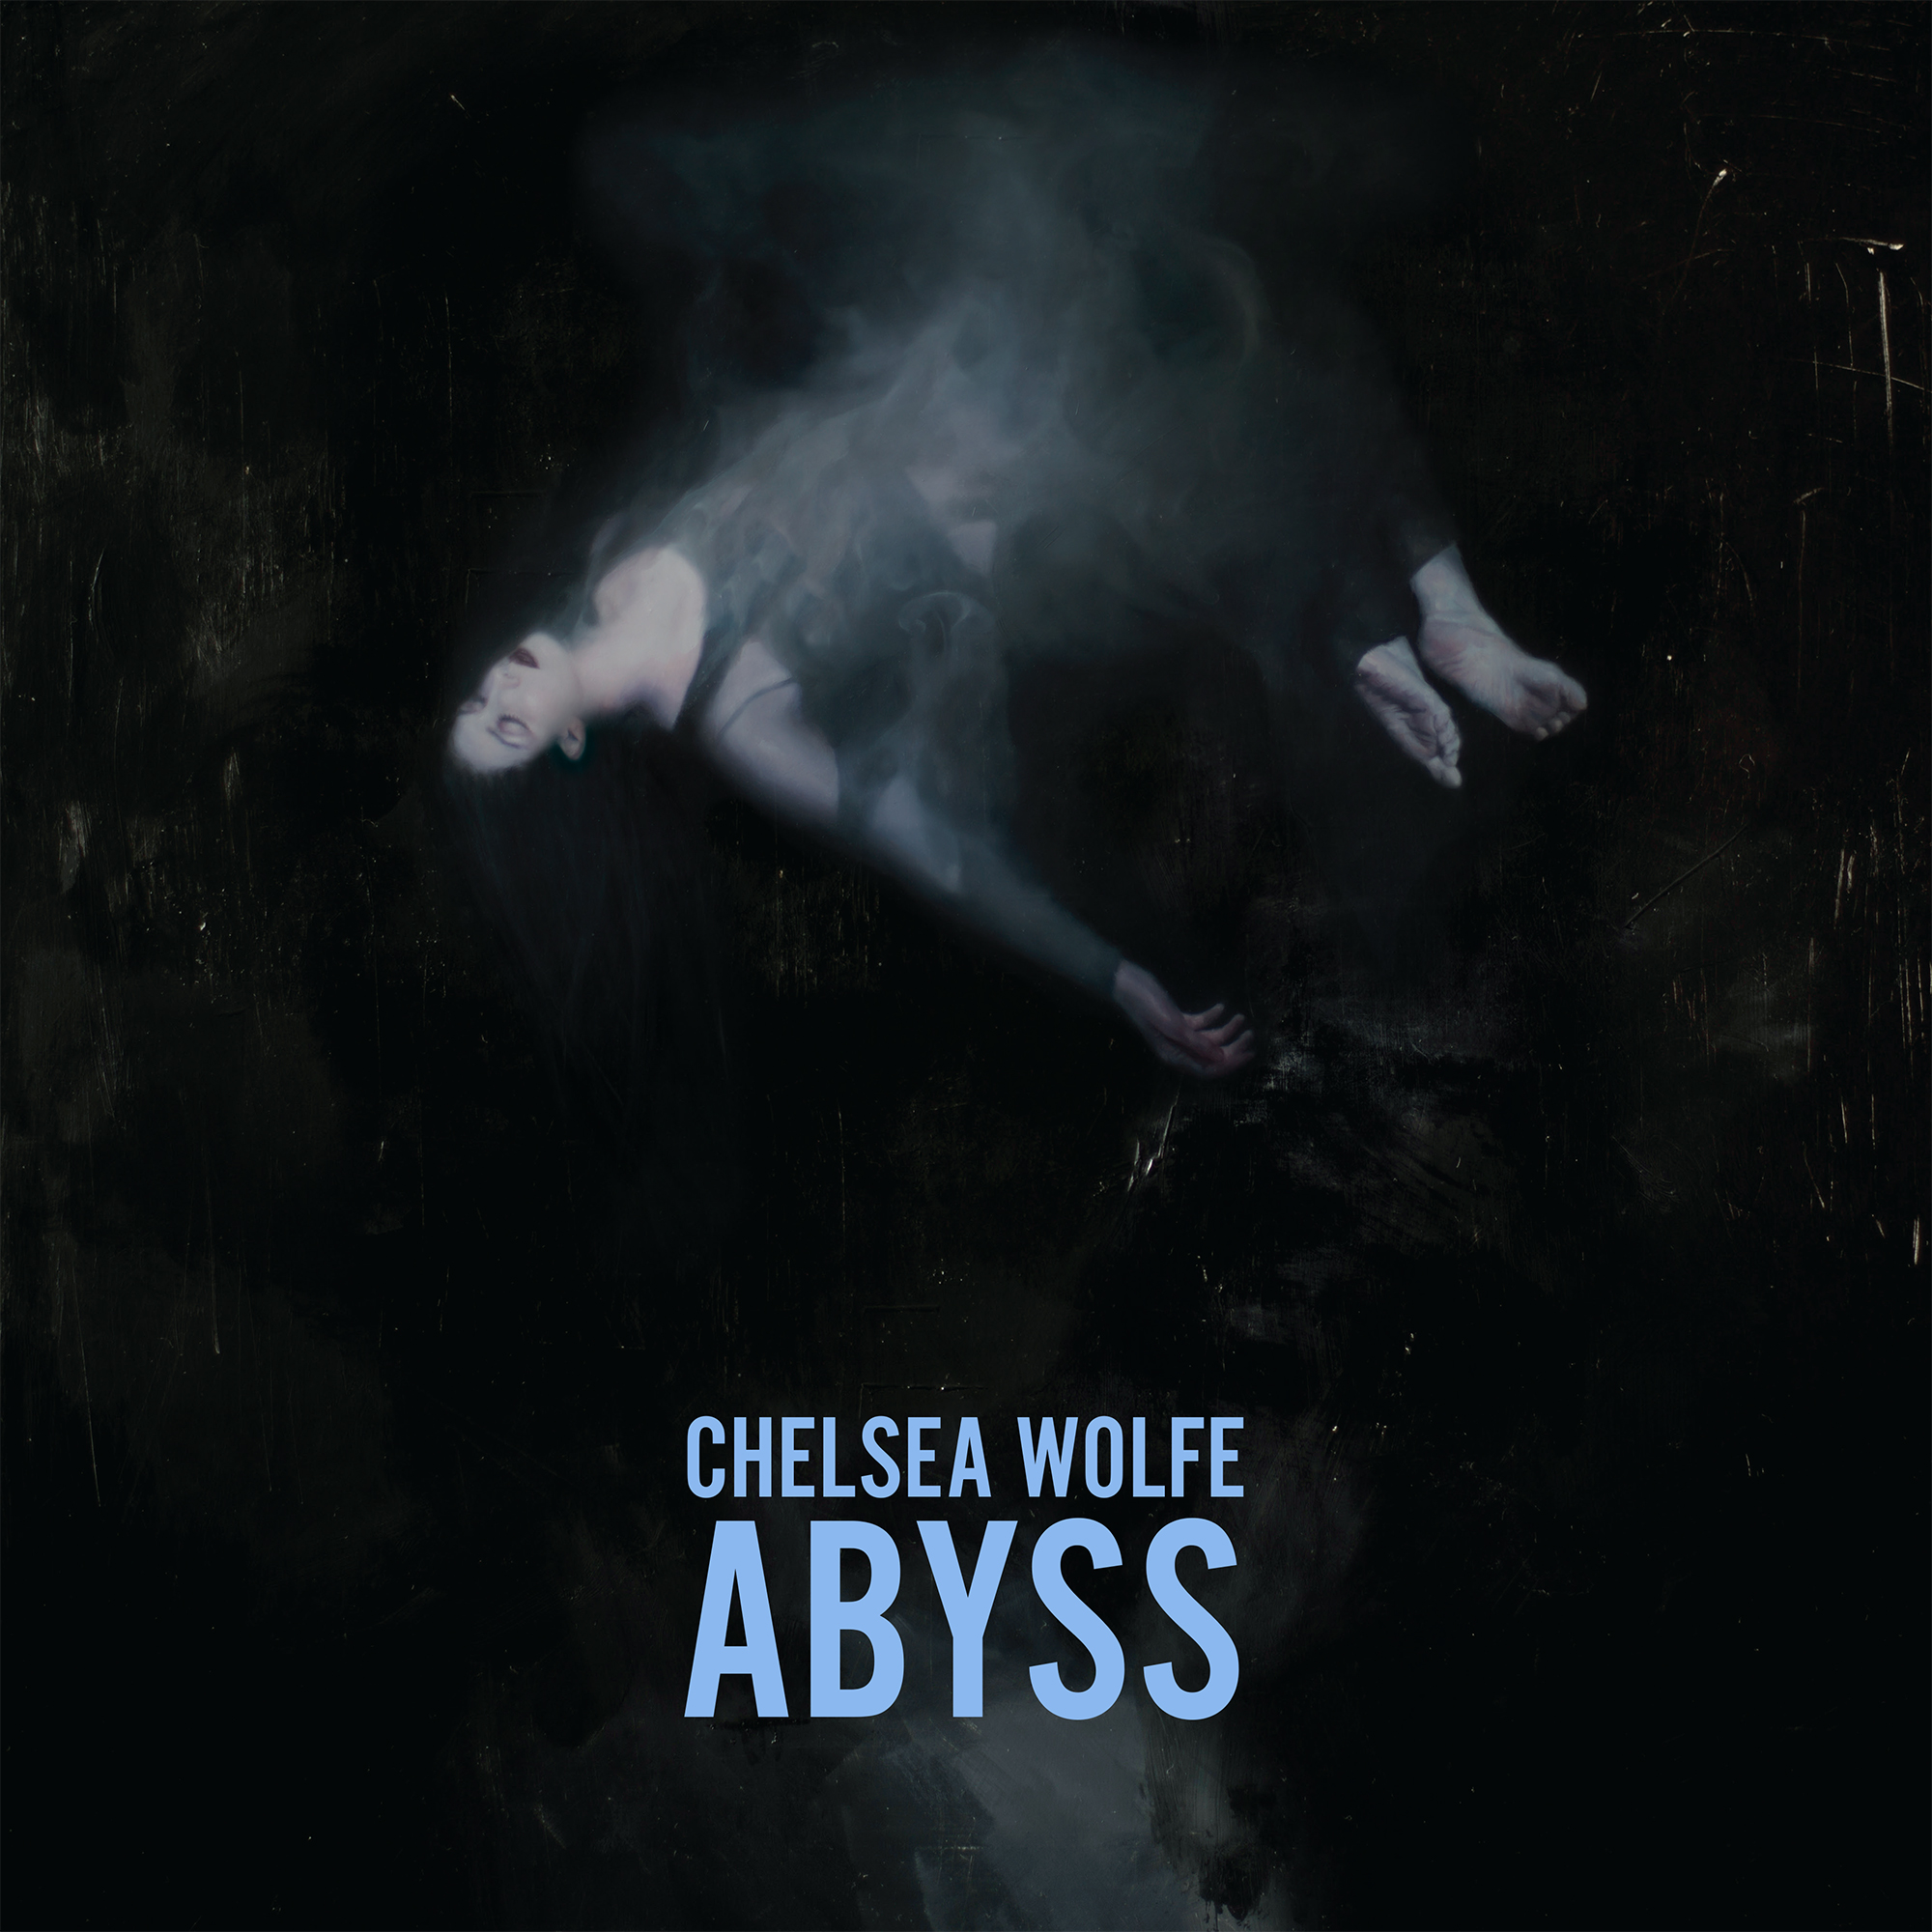 #6 - Chelsea Wolfe - Abyss